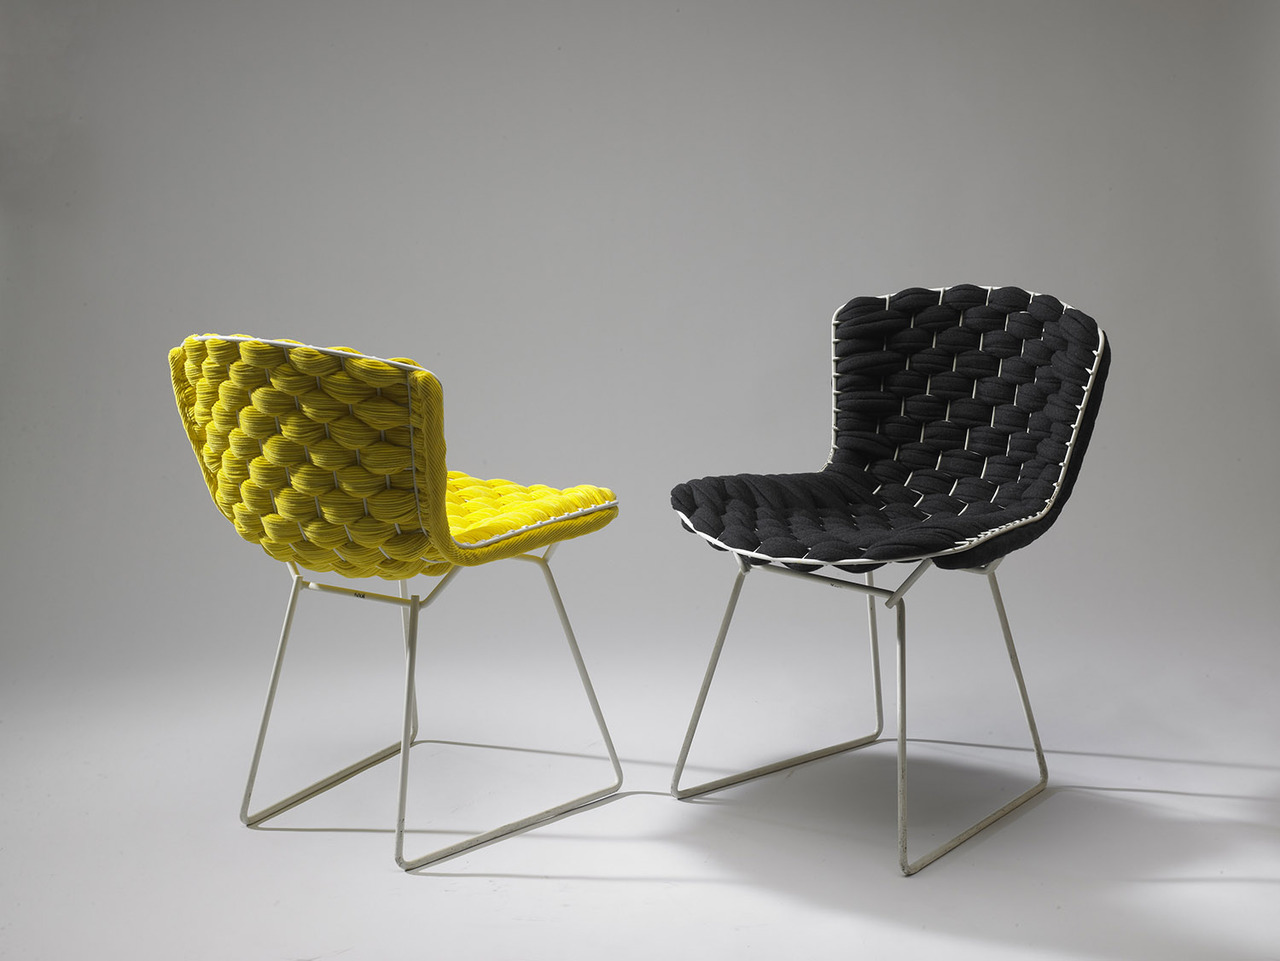 Bertoia Chairs Clément Brazille Reinvents The Iconic Bertoia Chair With